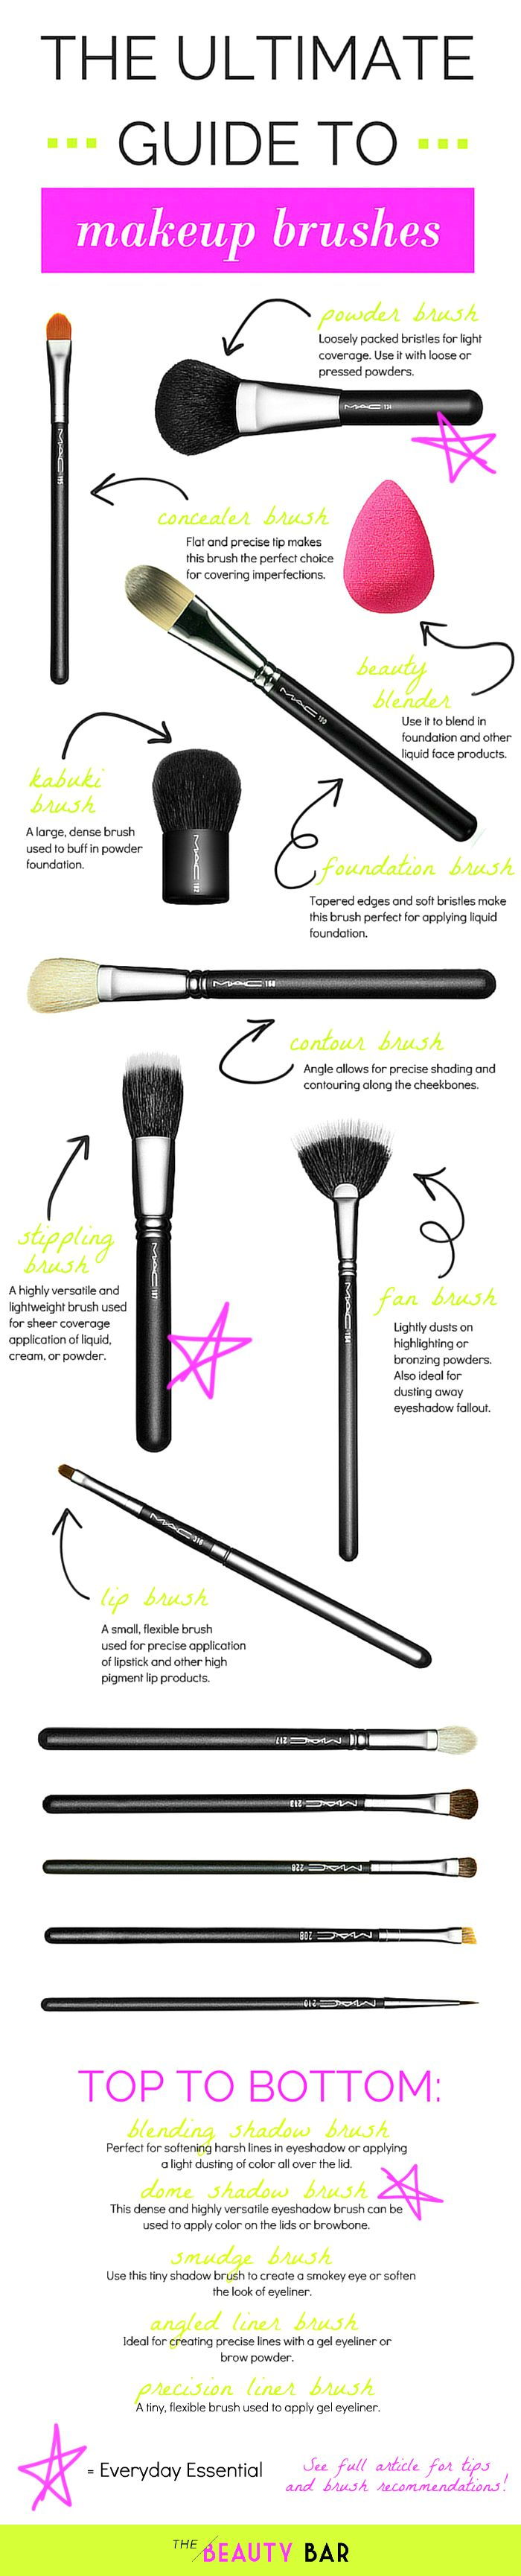 The Beauty Bar: Makeup Brush 101